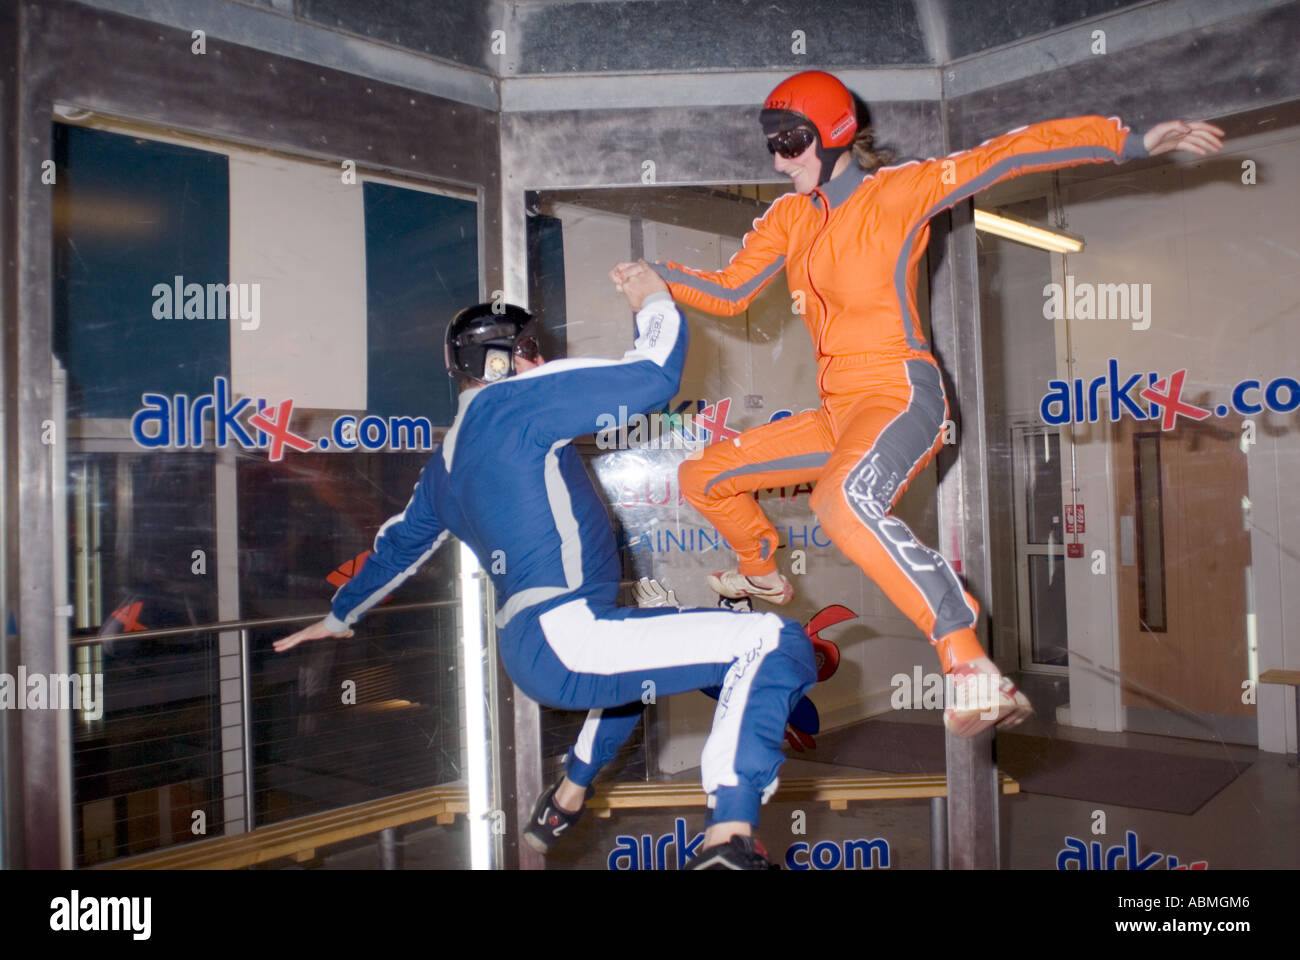 2 skydivers practising inside AirKix at the Xscape building in Central Milton Keynes, the Centre MK - Stock Image